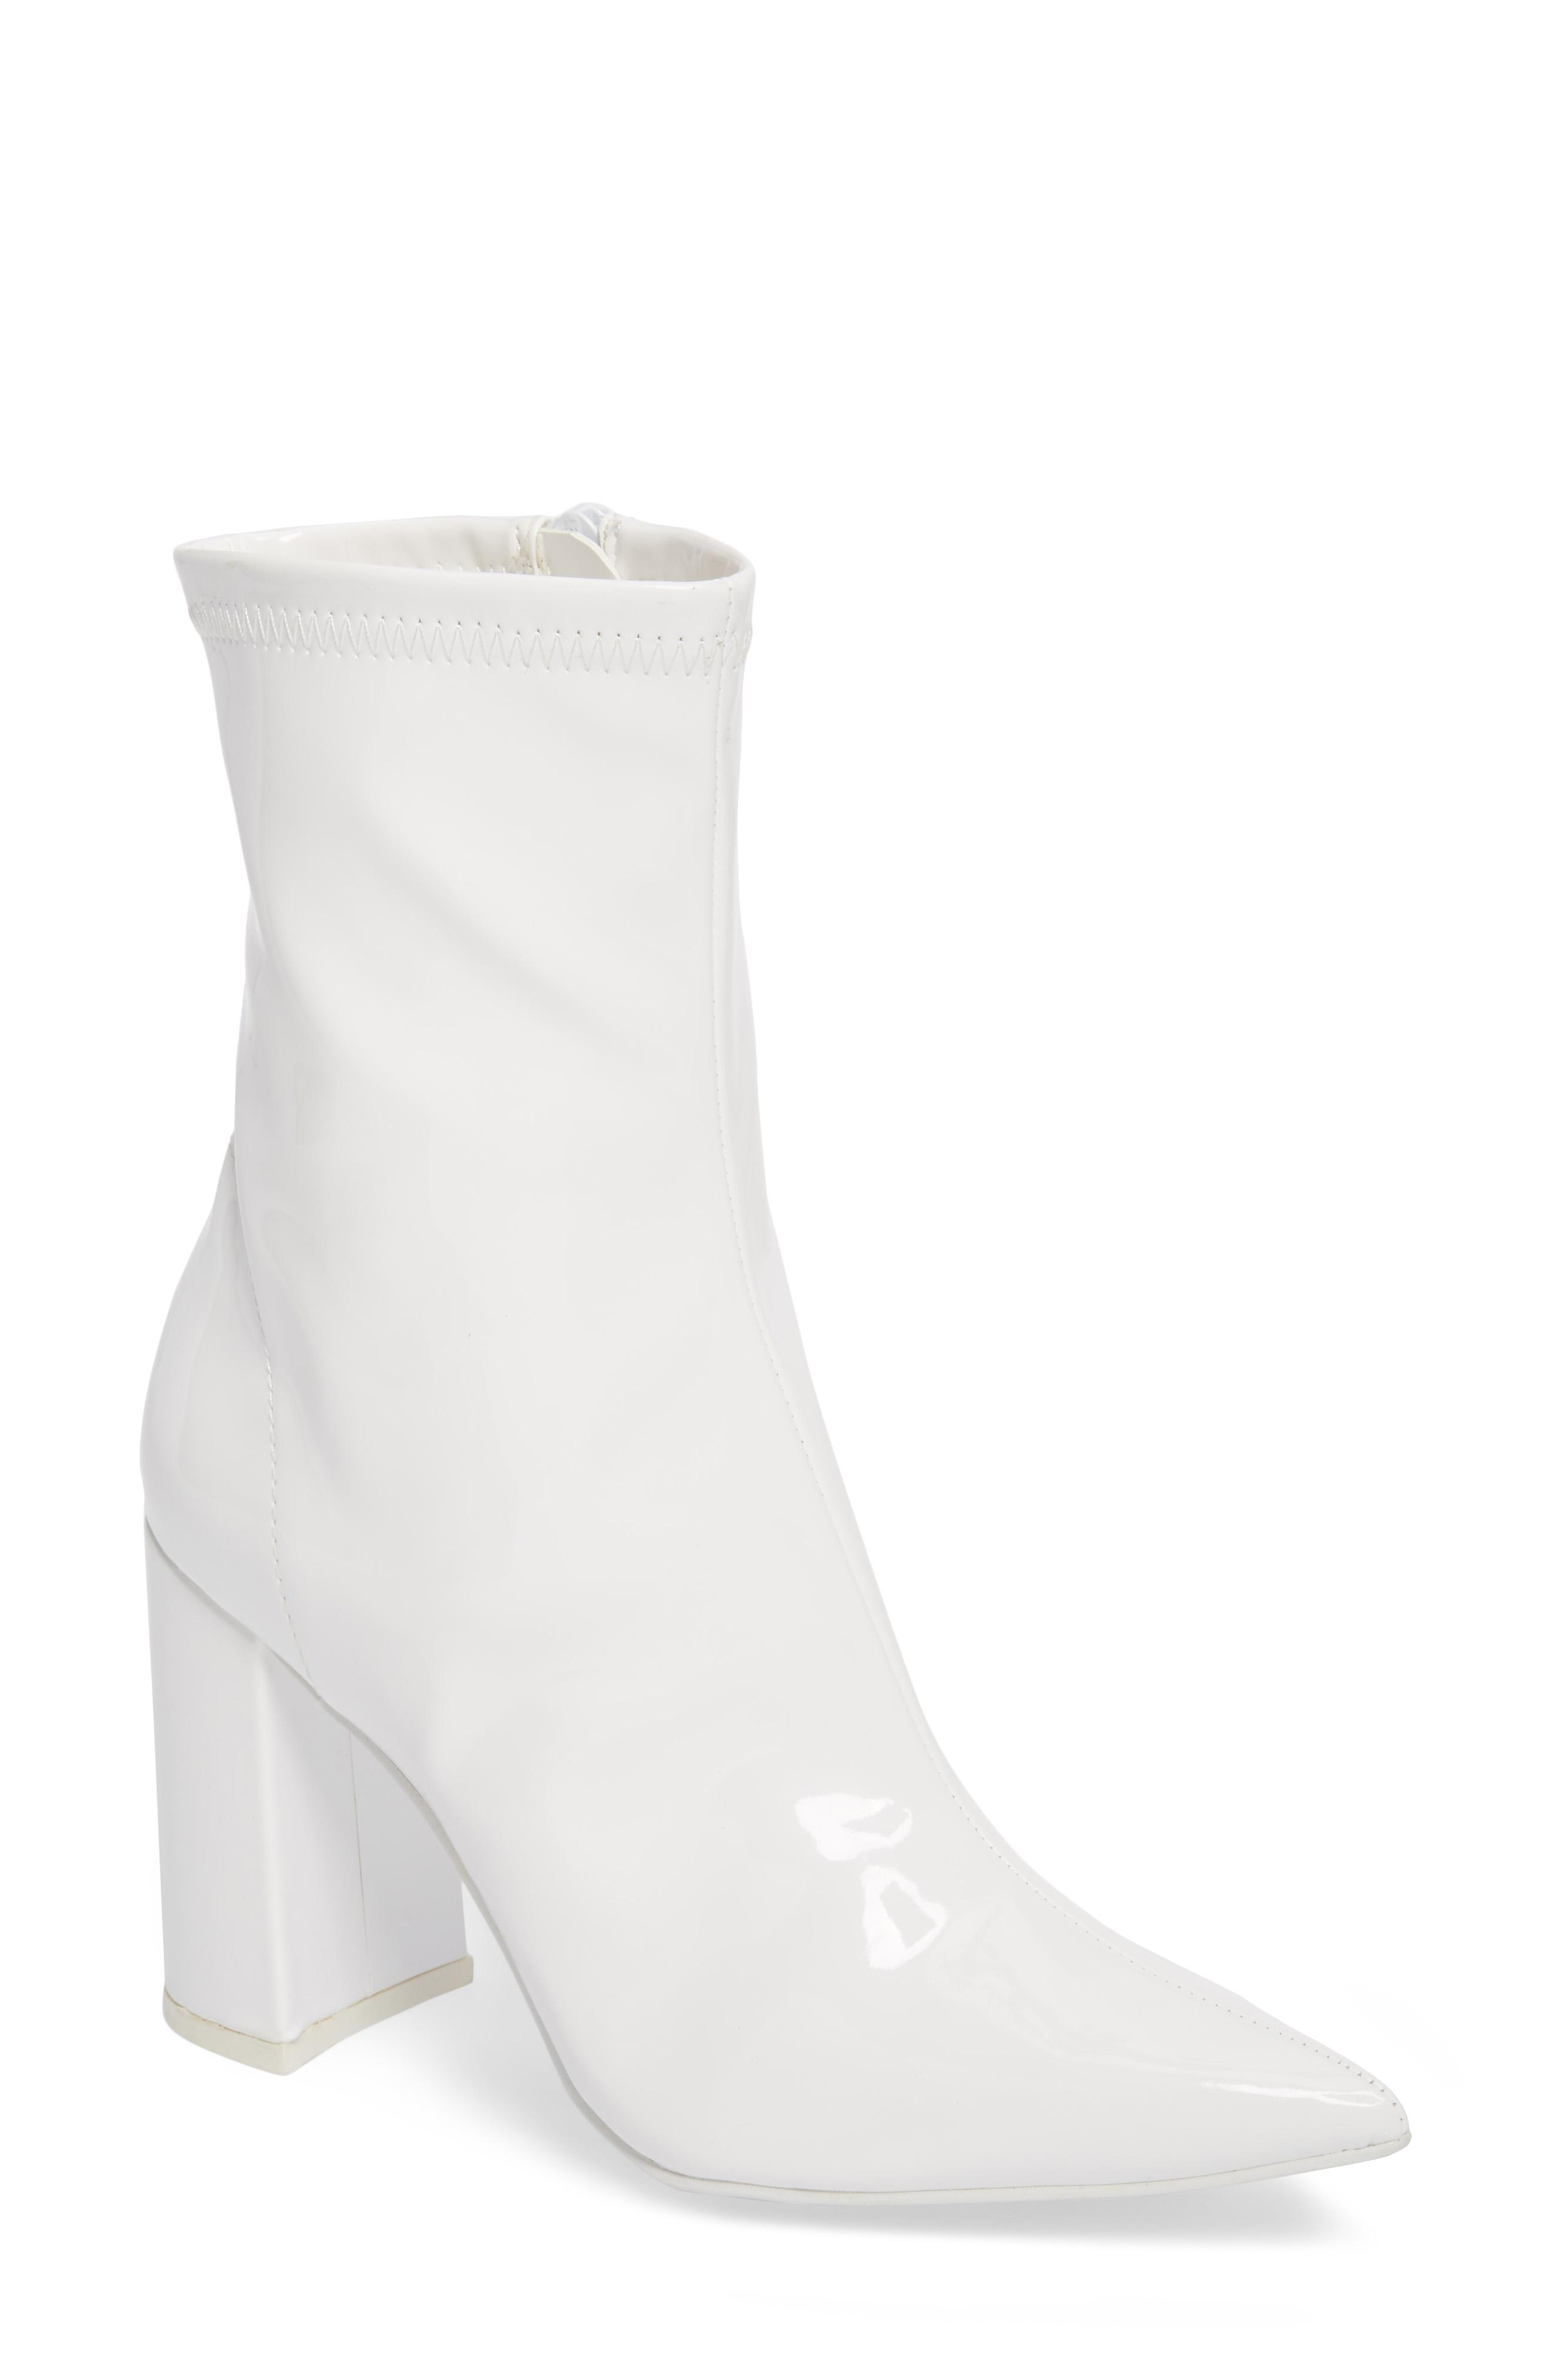 Jeffrey Campbell, Siren Bootie, $124.95,{&amp;nbsp;}can be purchased at Nordstrom.com{&amp;nbsp;}(Image: Courtesy Nordstrom)<p></p>